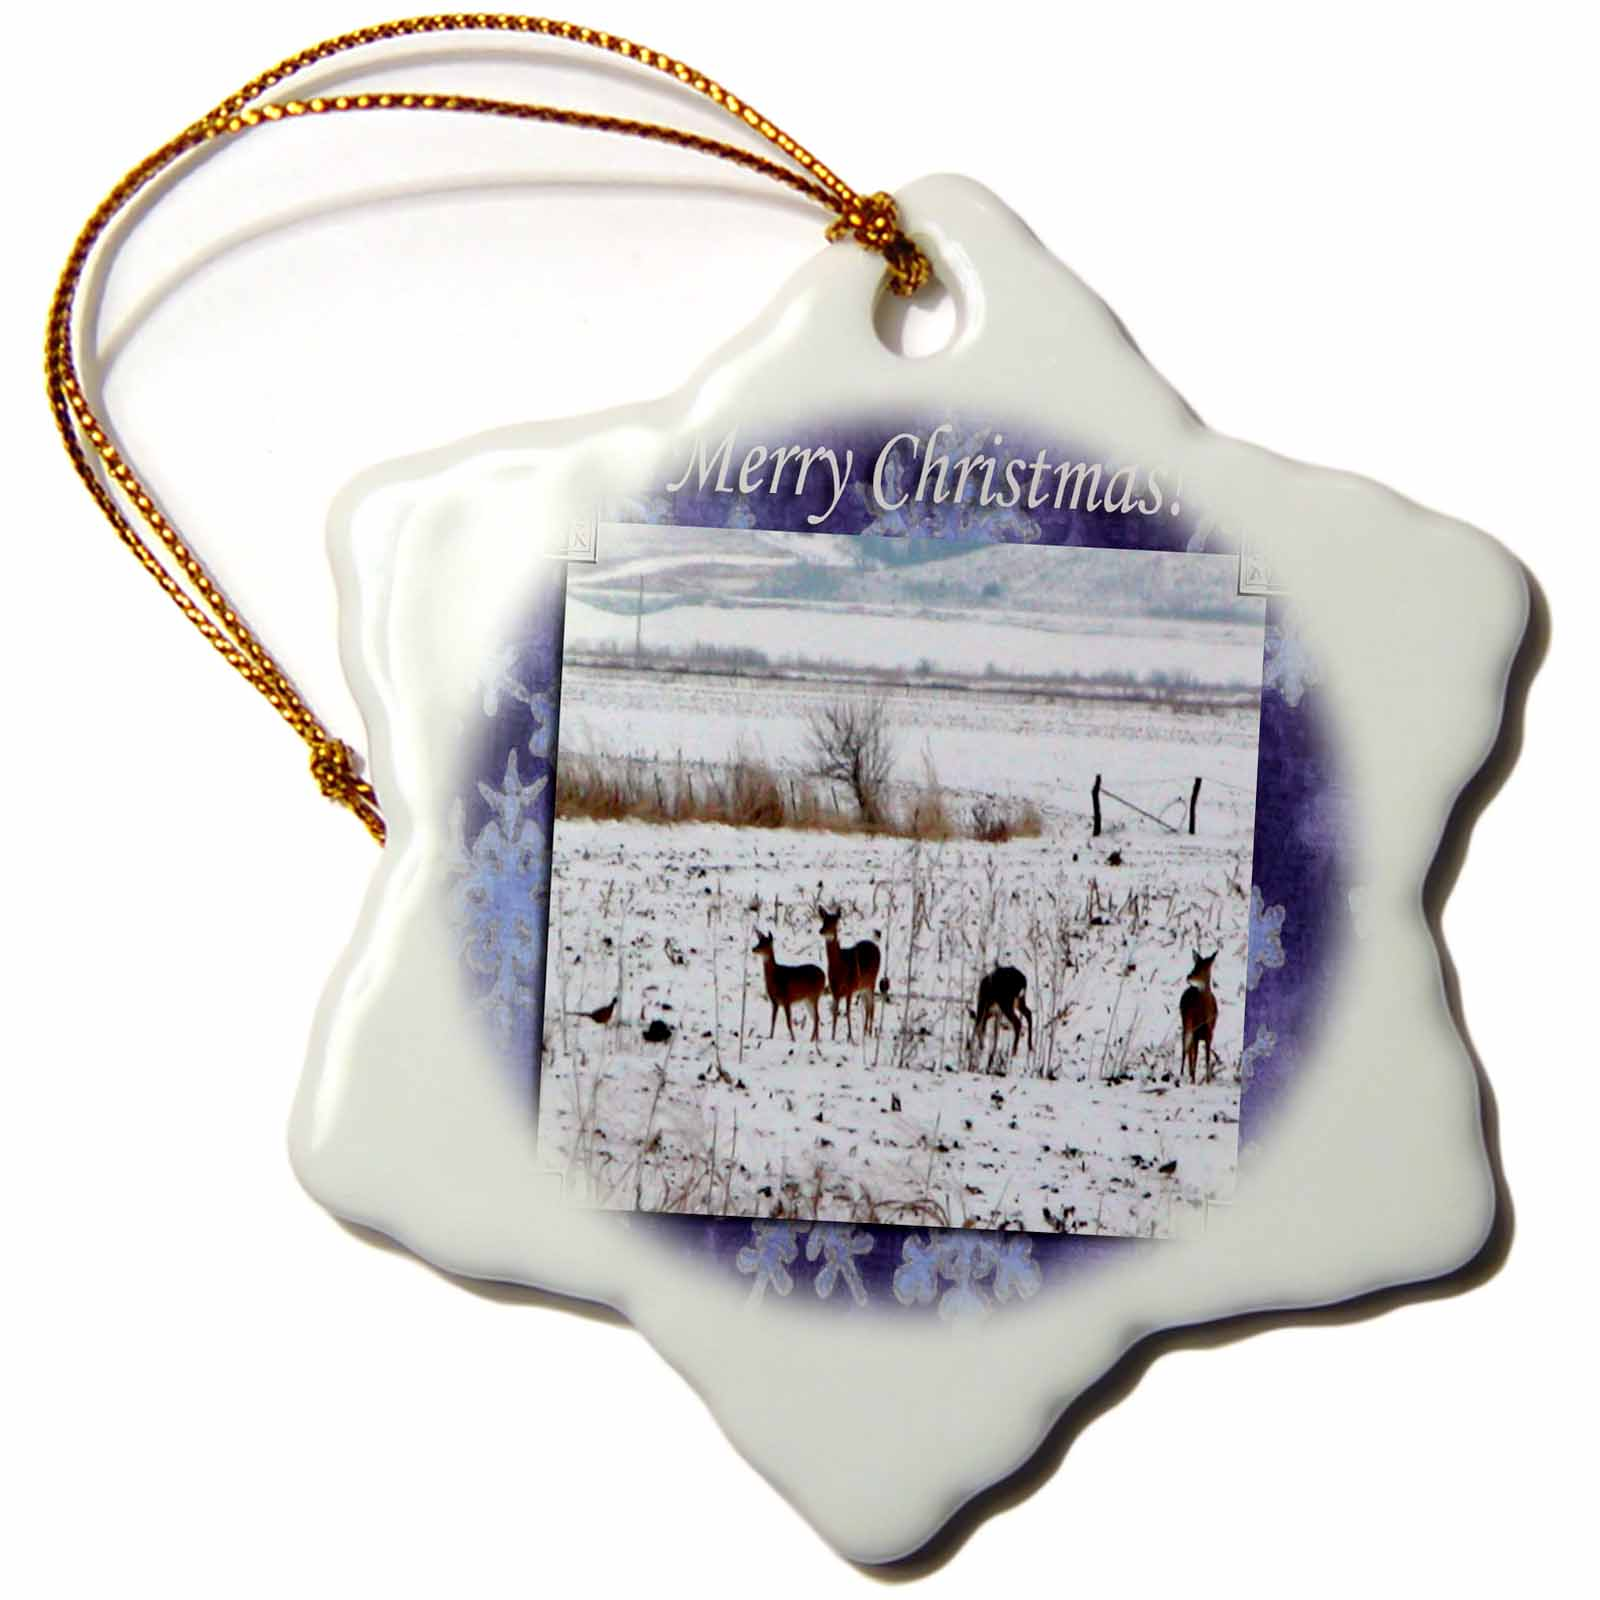 3dRose Deer Family and Pheasants Playing in the Snow Merry Christmas, Snowflake Ornament, Porcelain, 3-inch